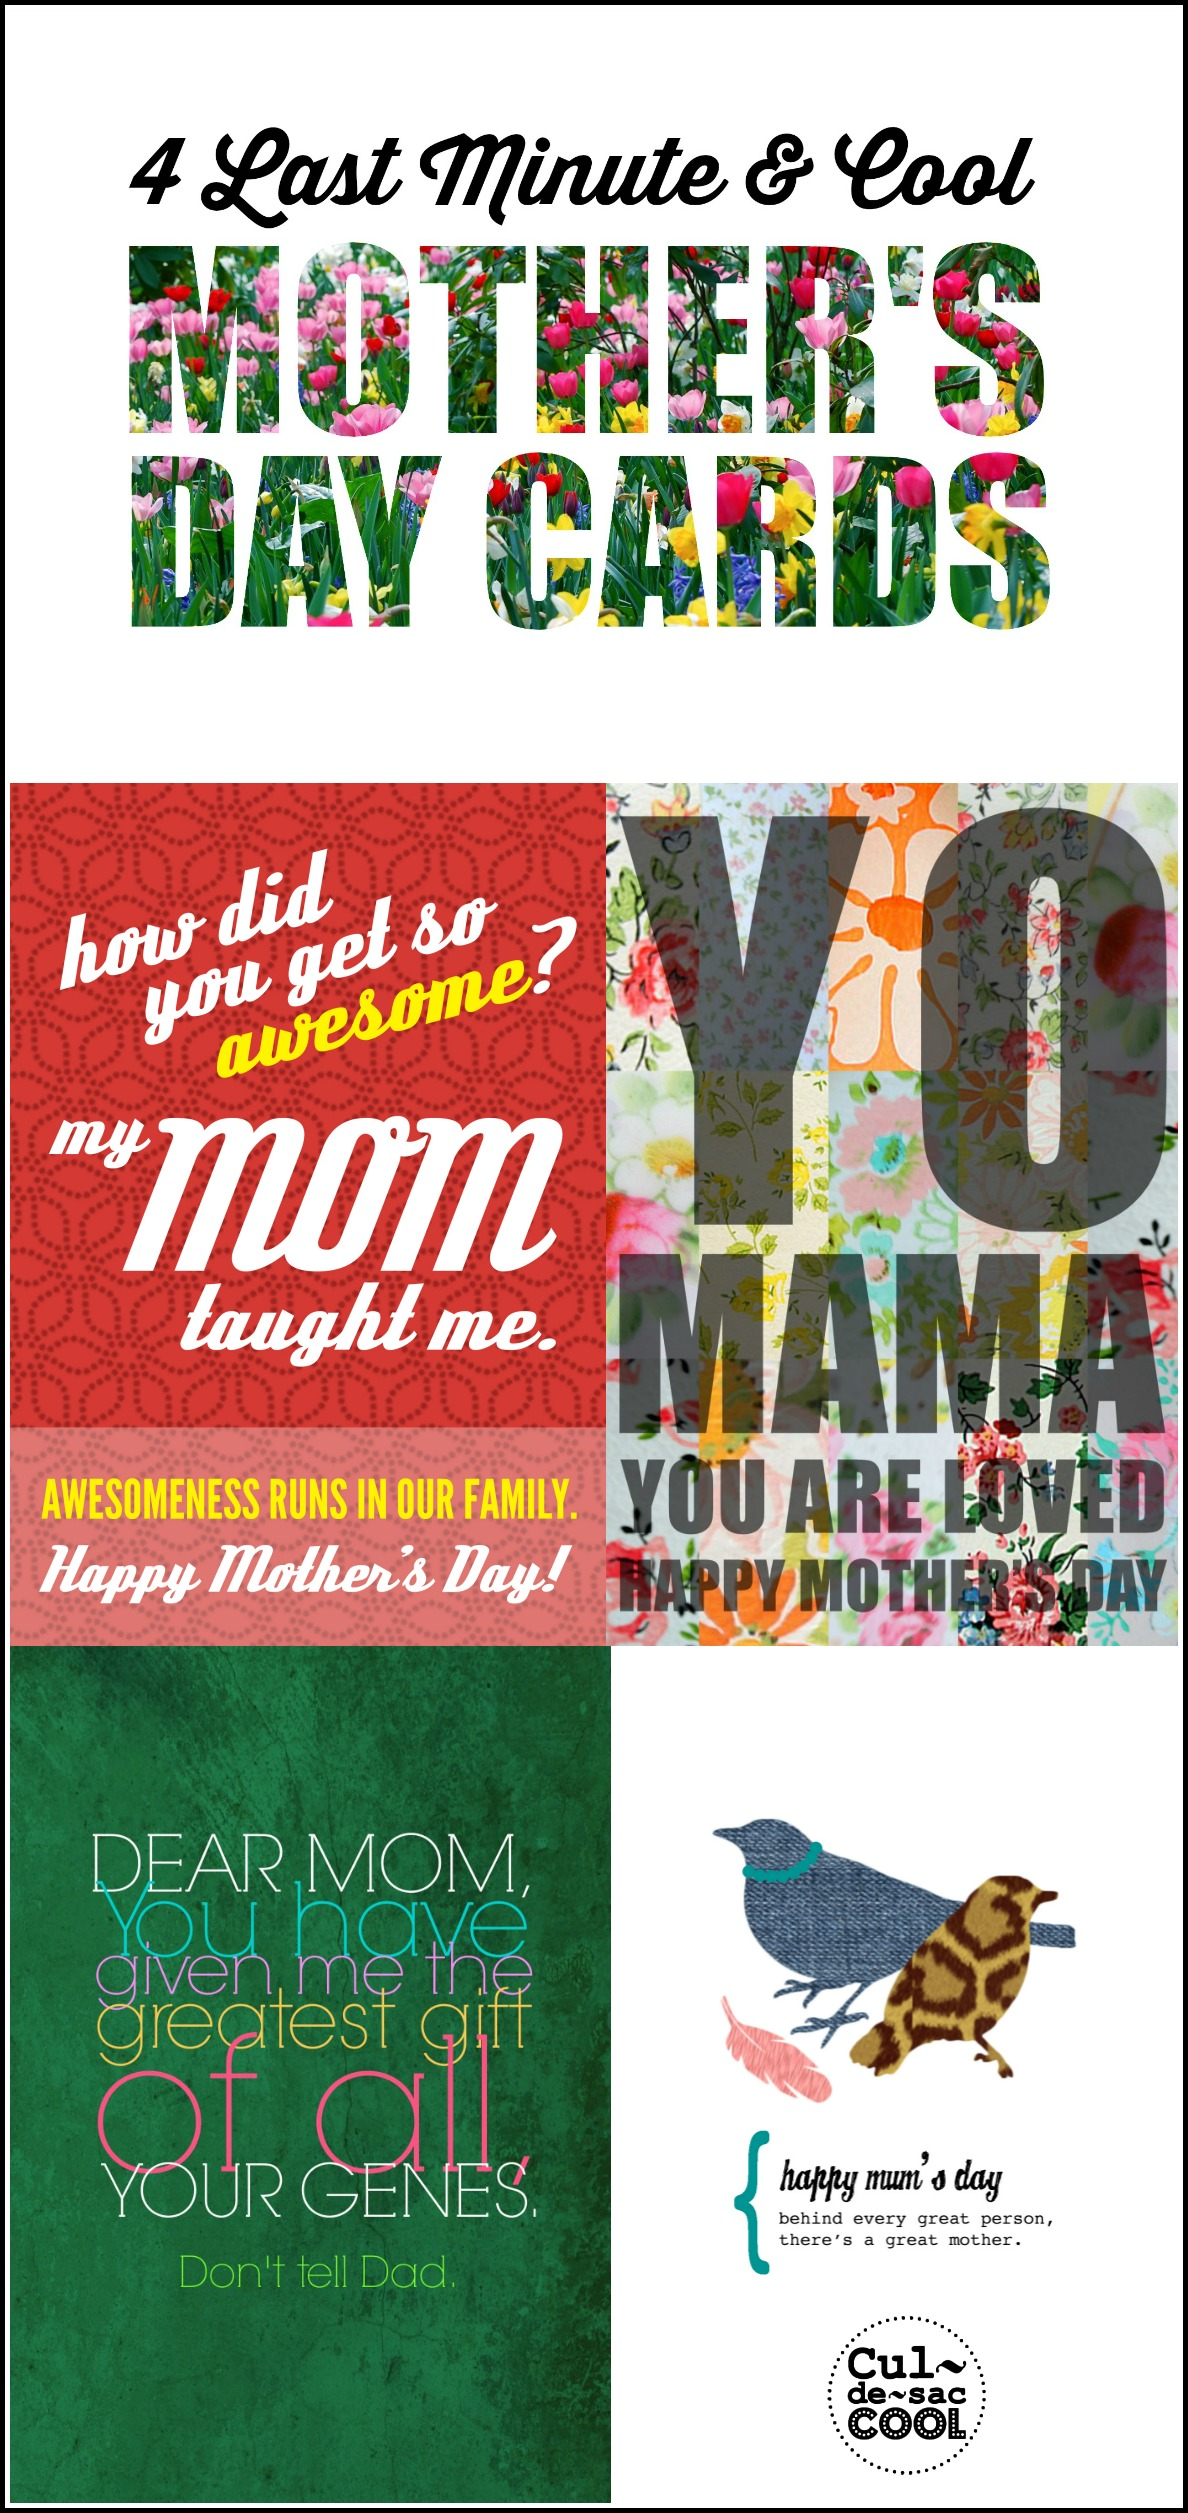 4 Last Minute & Cool Mother's Day Cards Collage